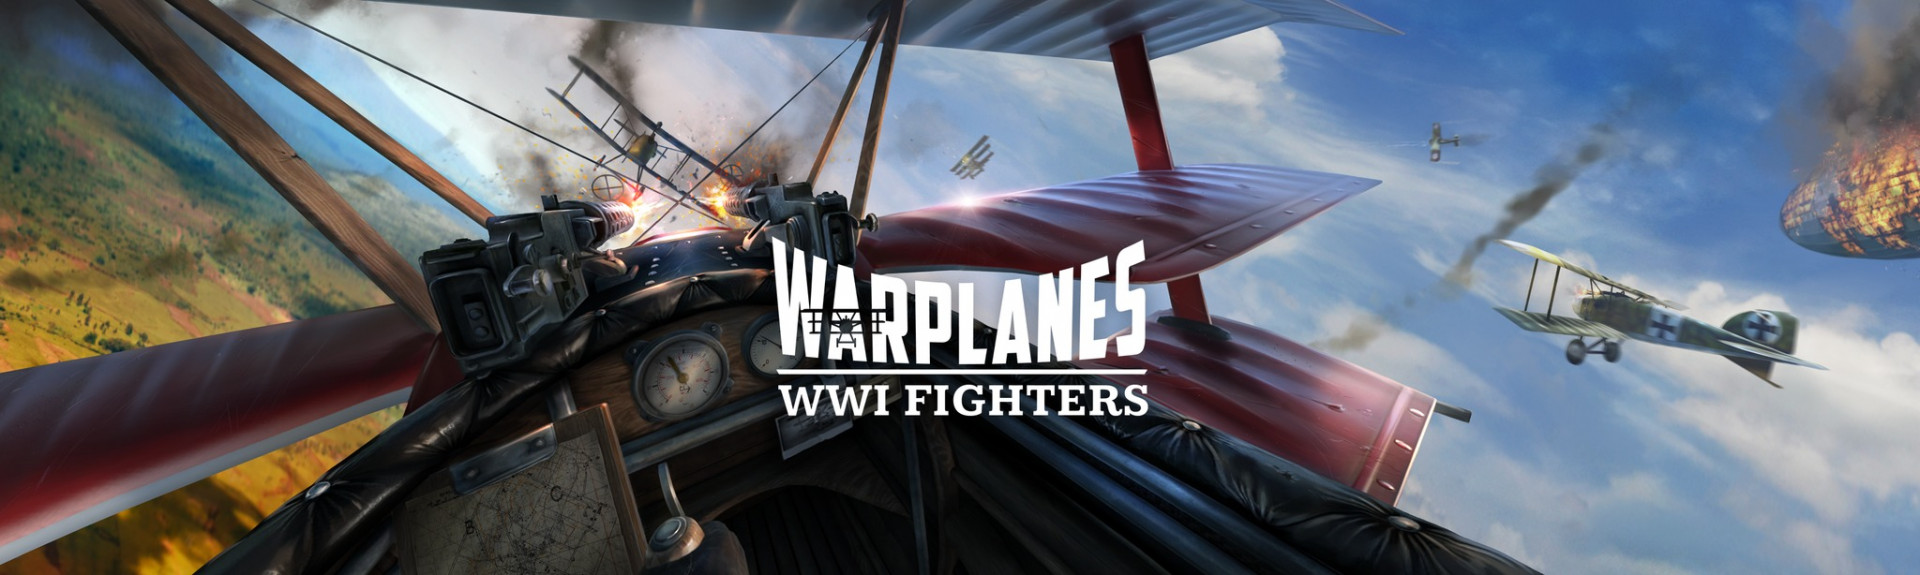 Warplanes: WW1 Fighters